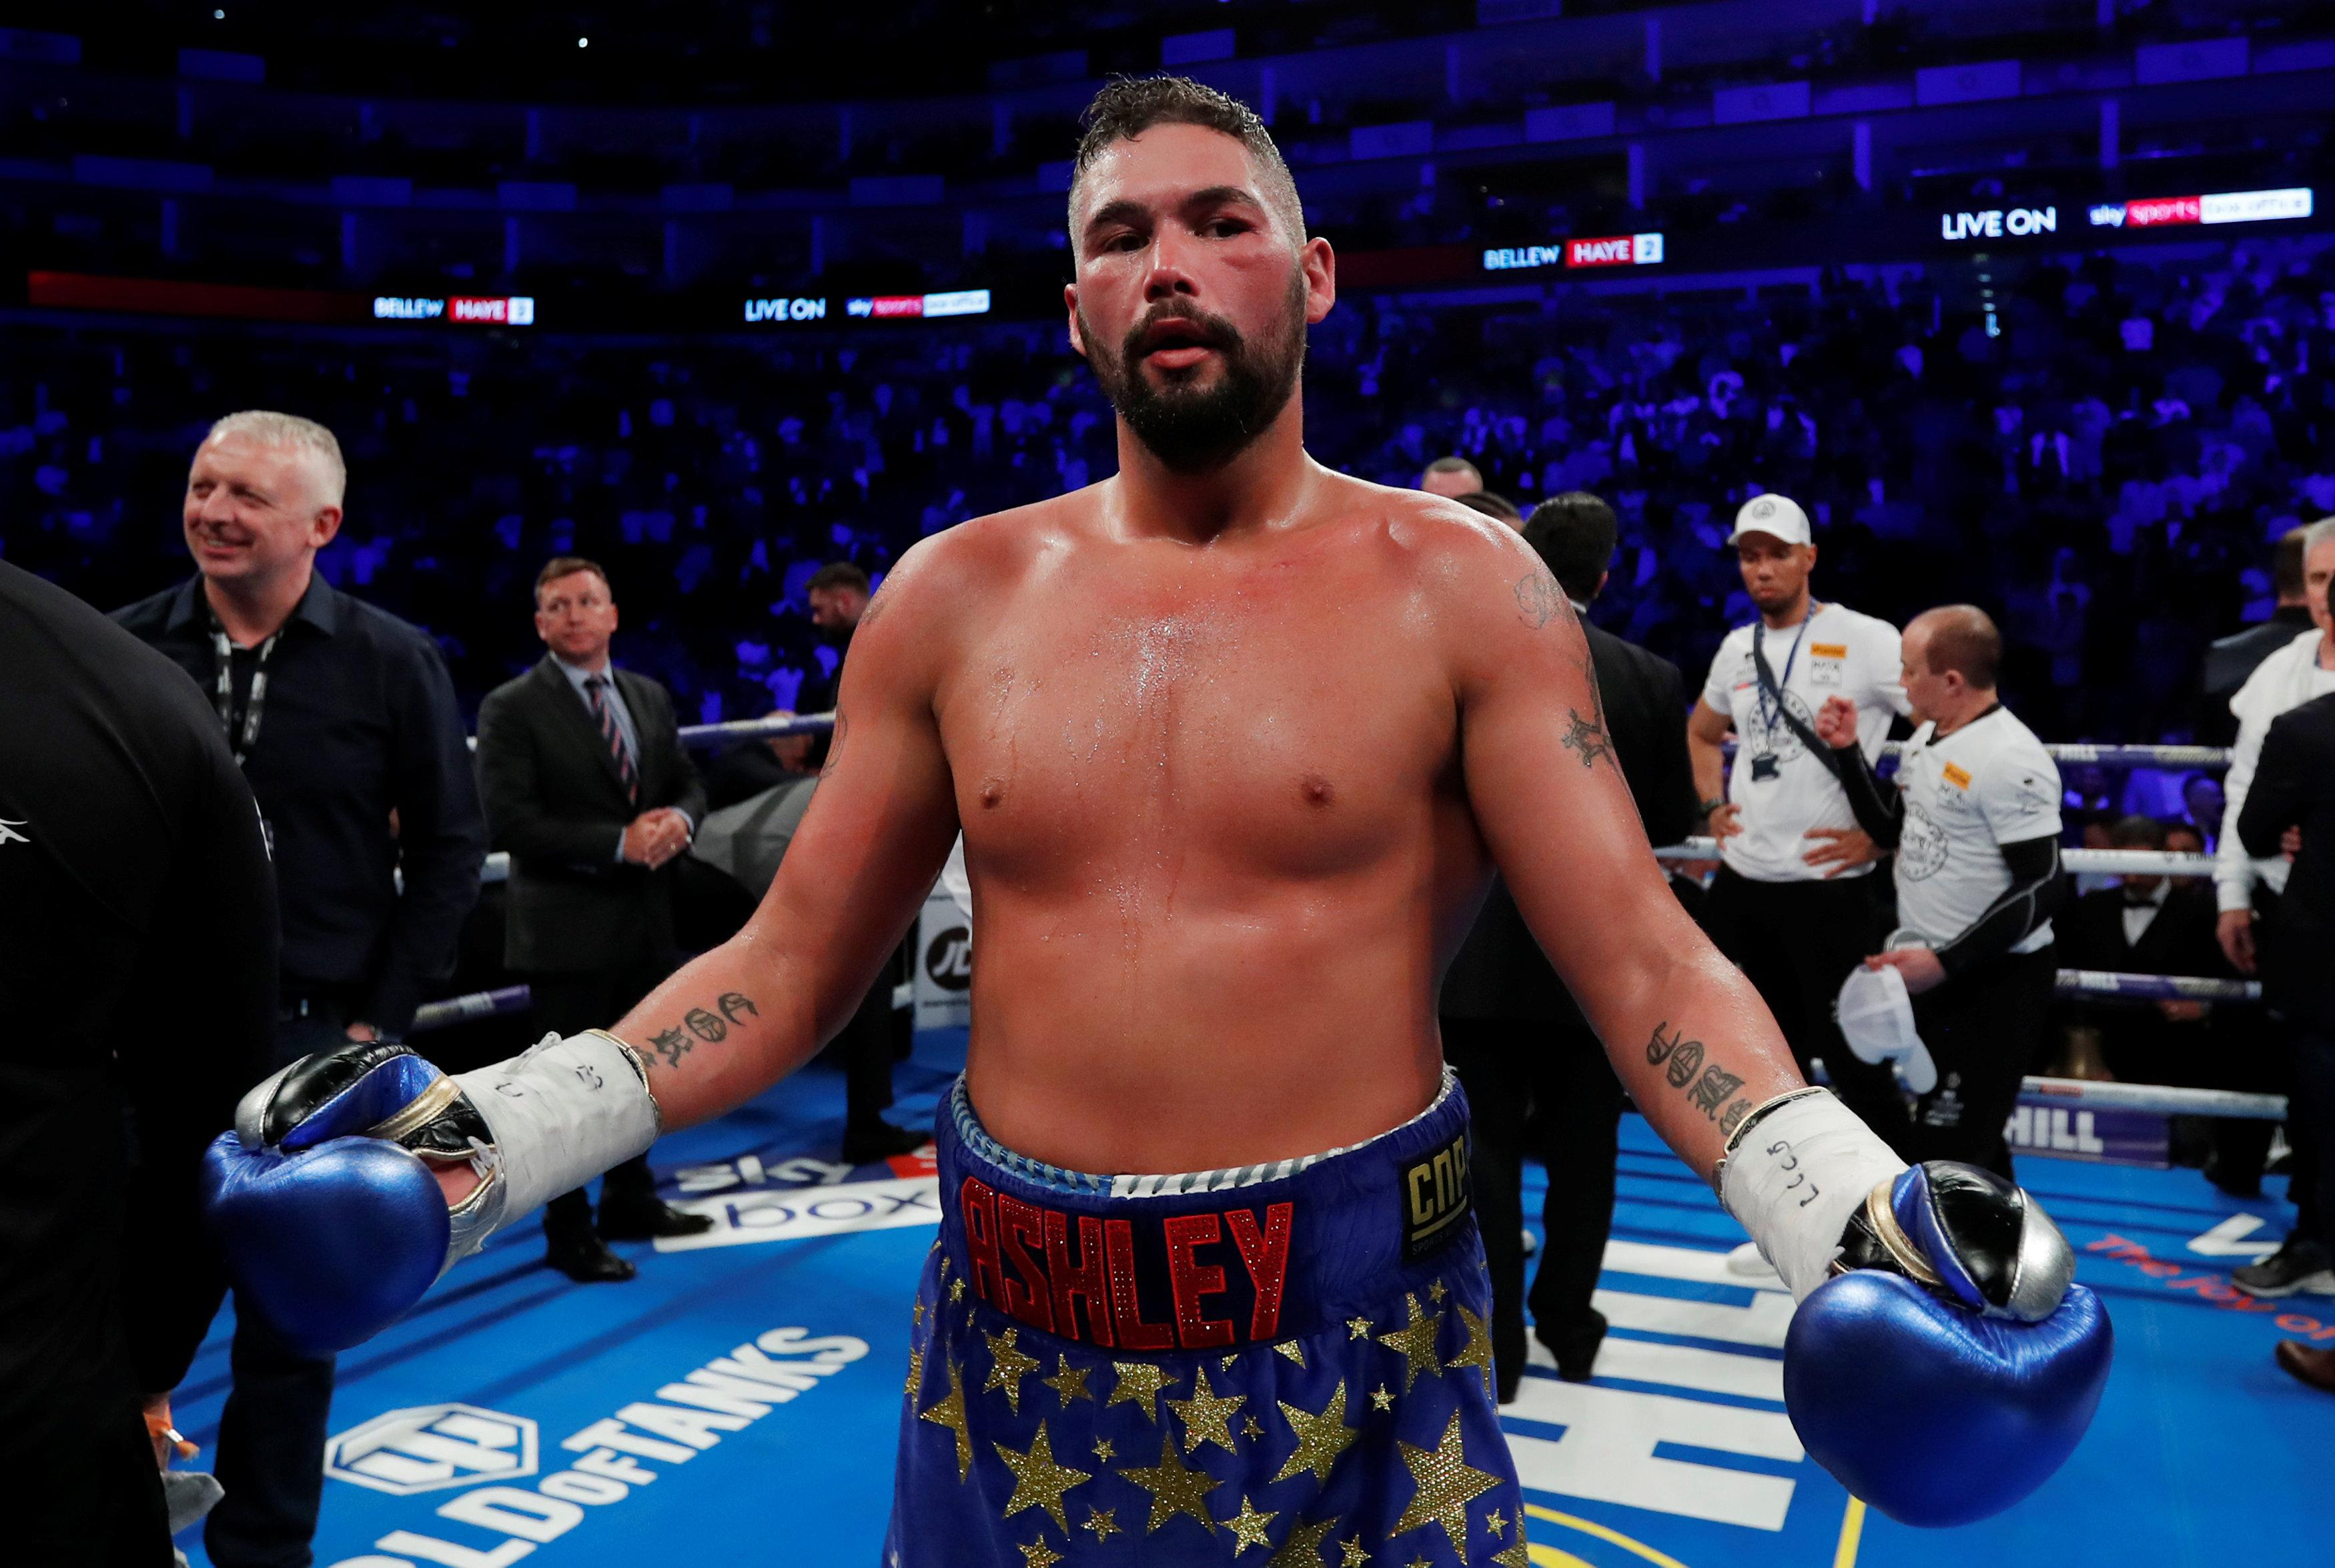 Tony Bellew reckons Tyson Fury is no match for him right now